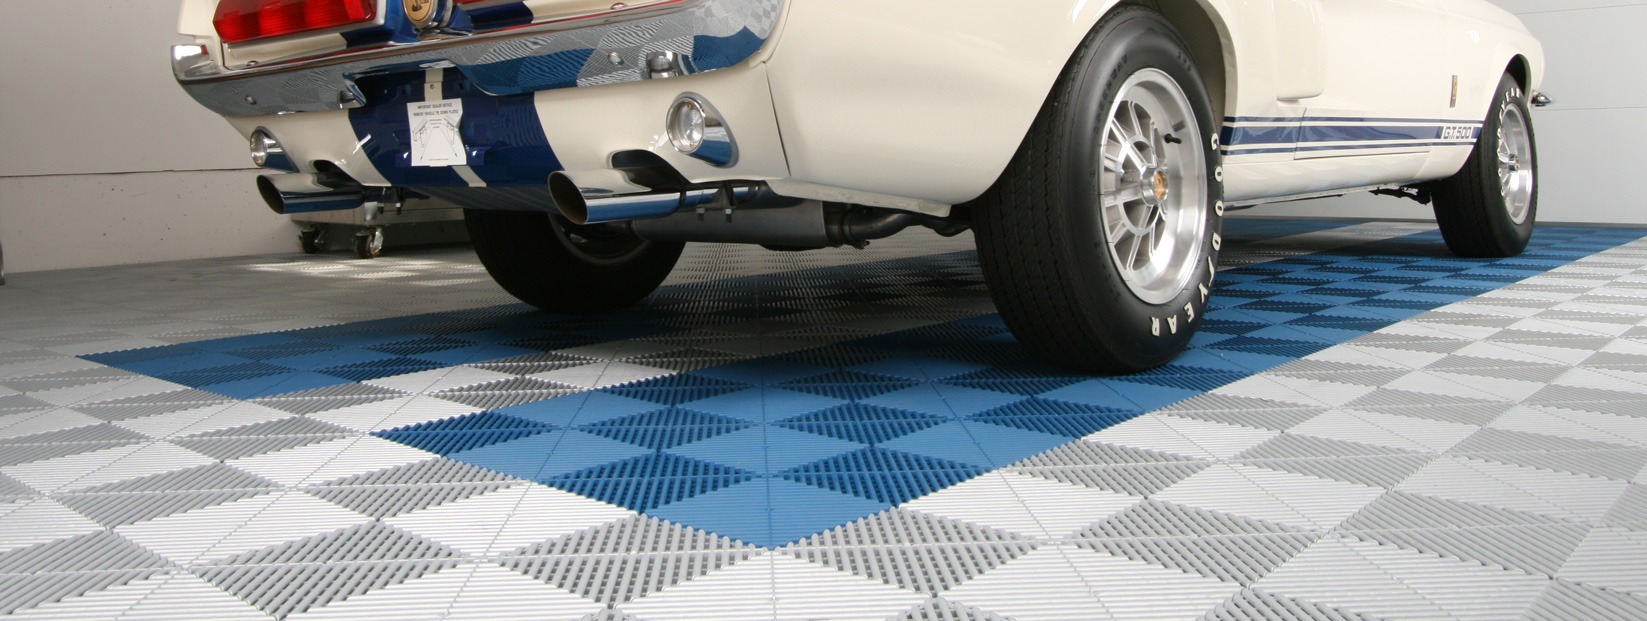 Garage Flooring Tiles Gilbert